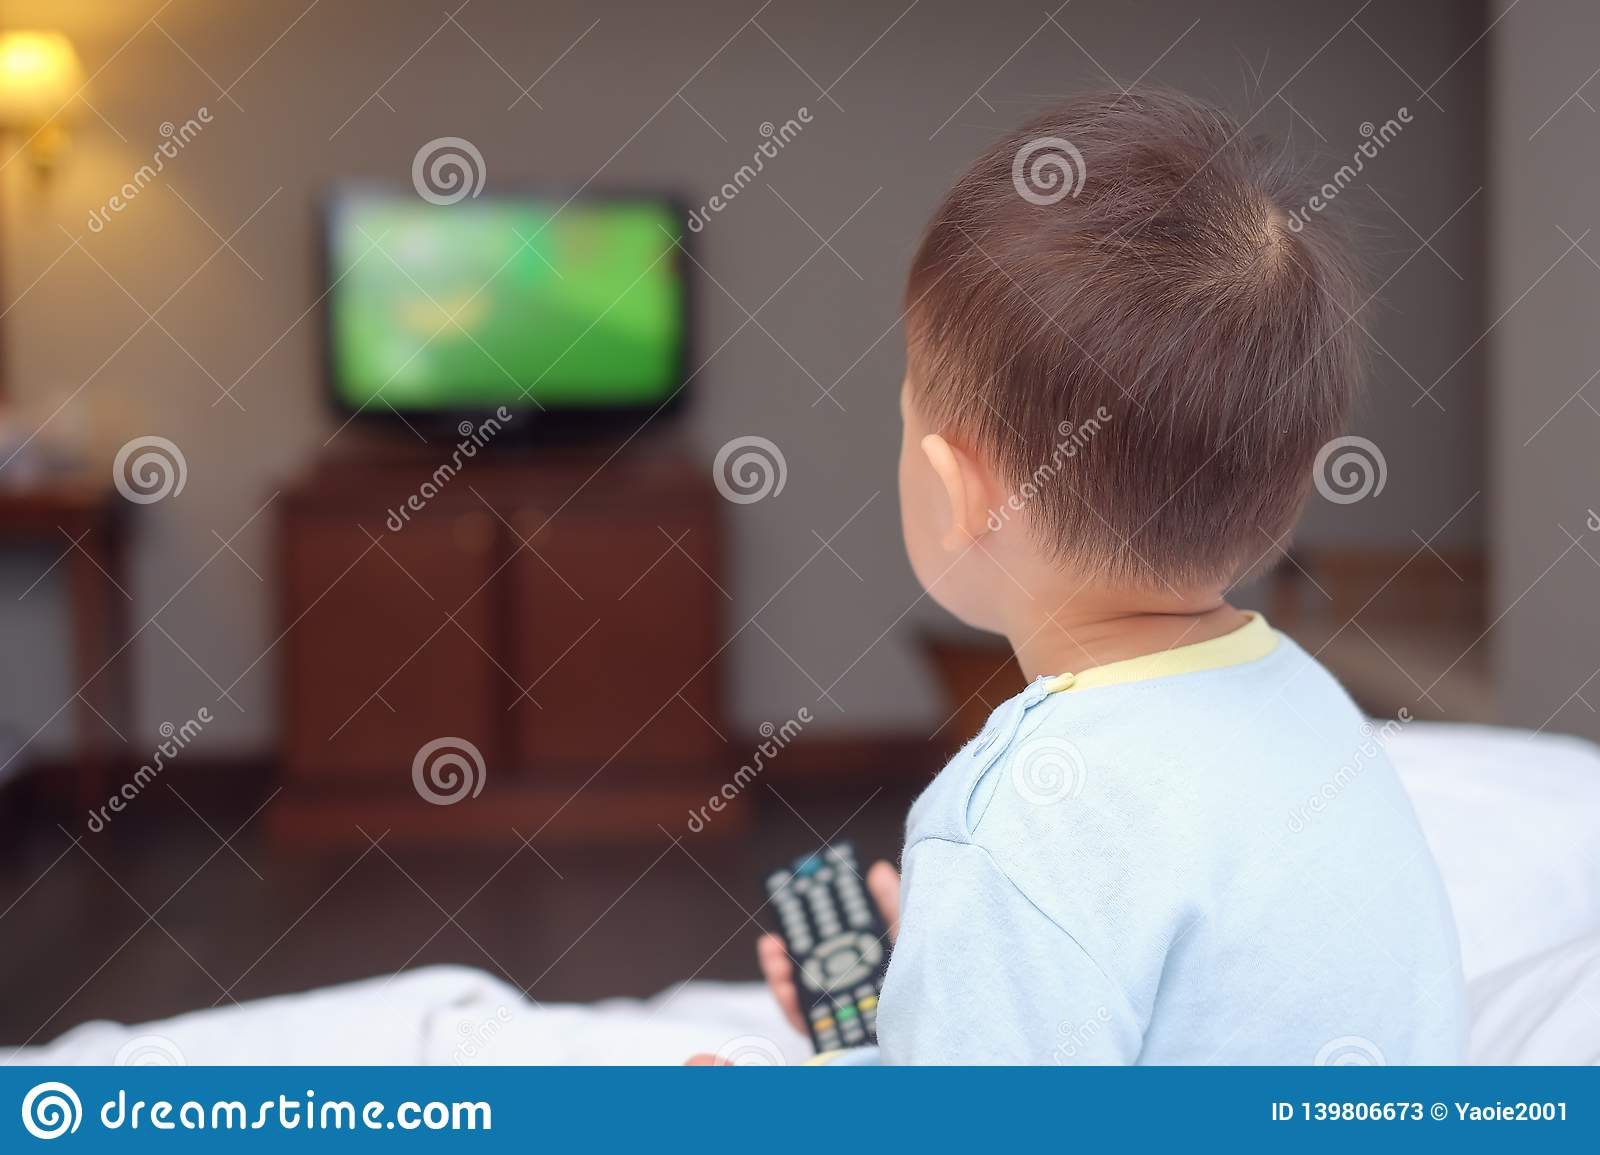 469 Tv Child Bedroom Photos Free Royalty Free Stock Photos From Dreamstime